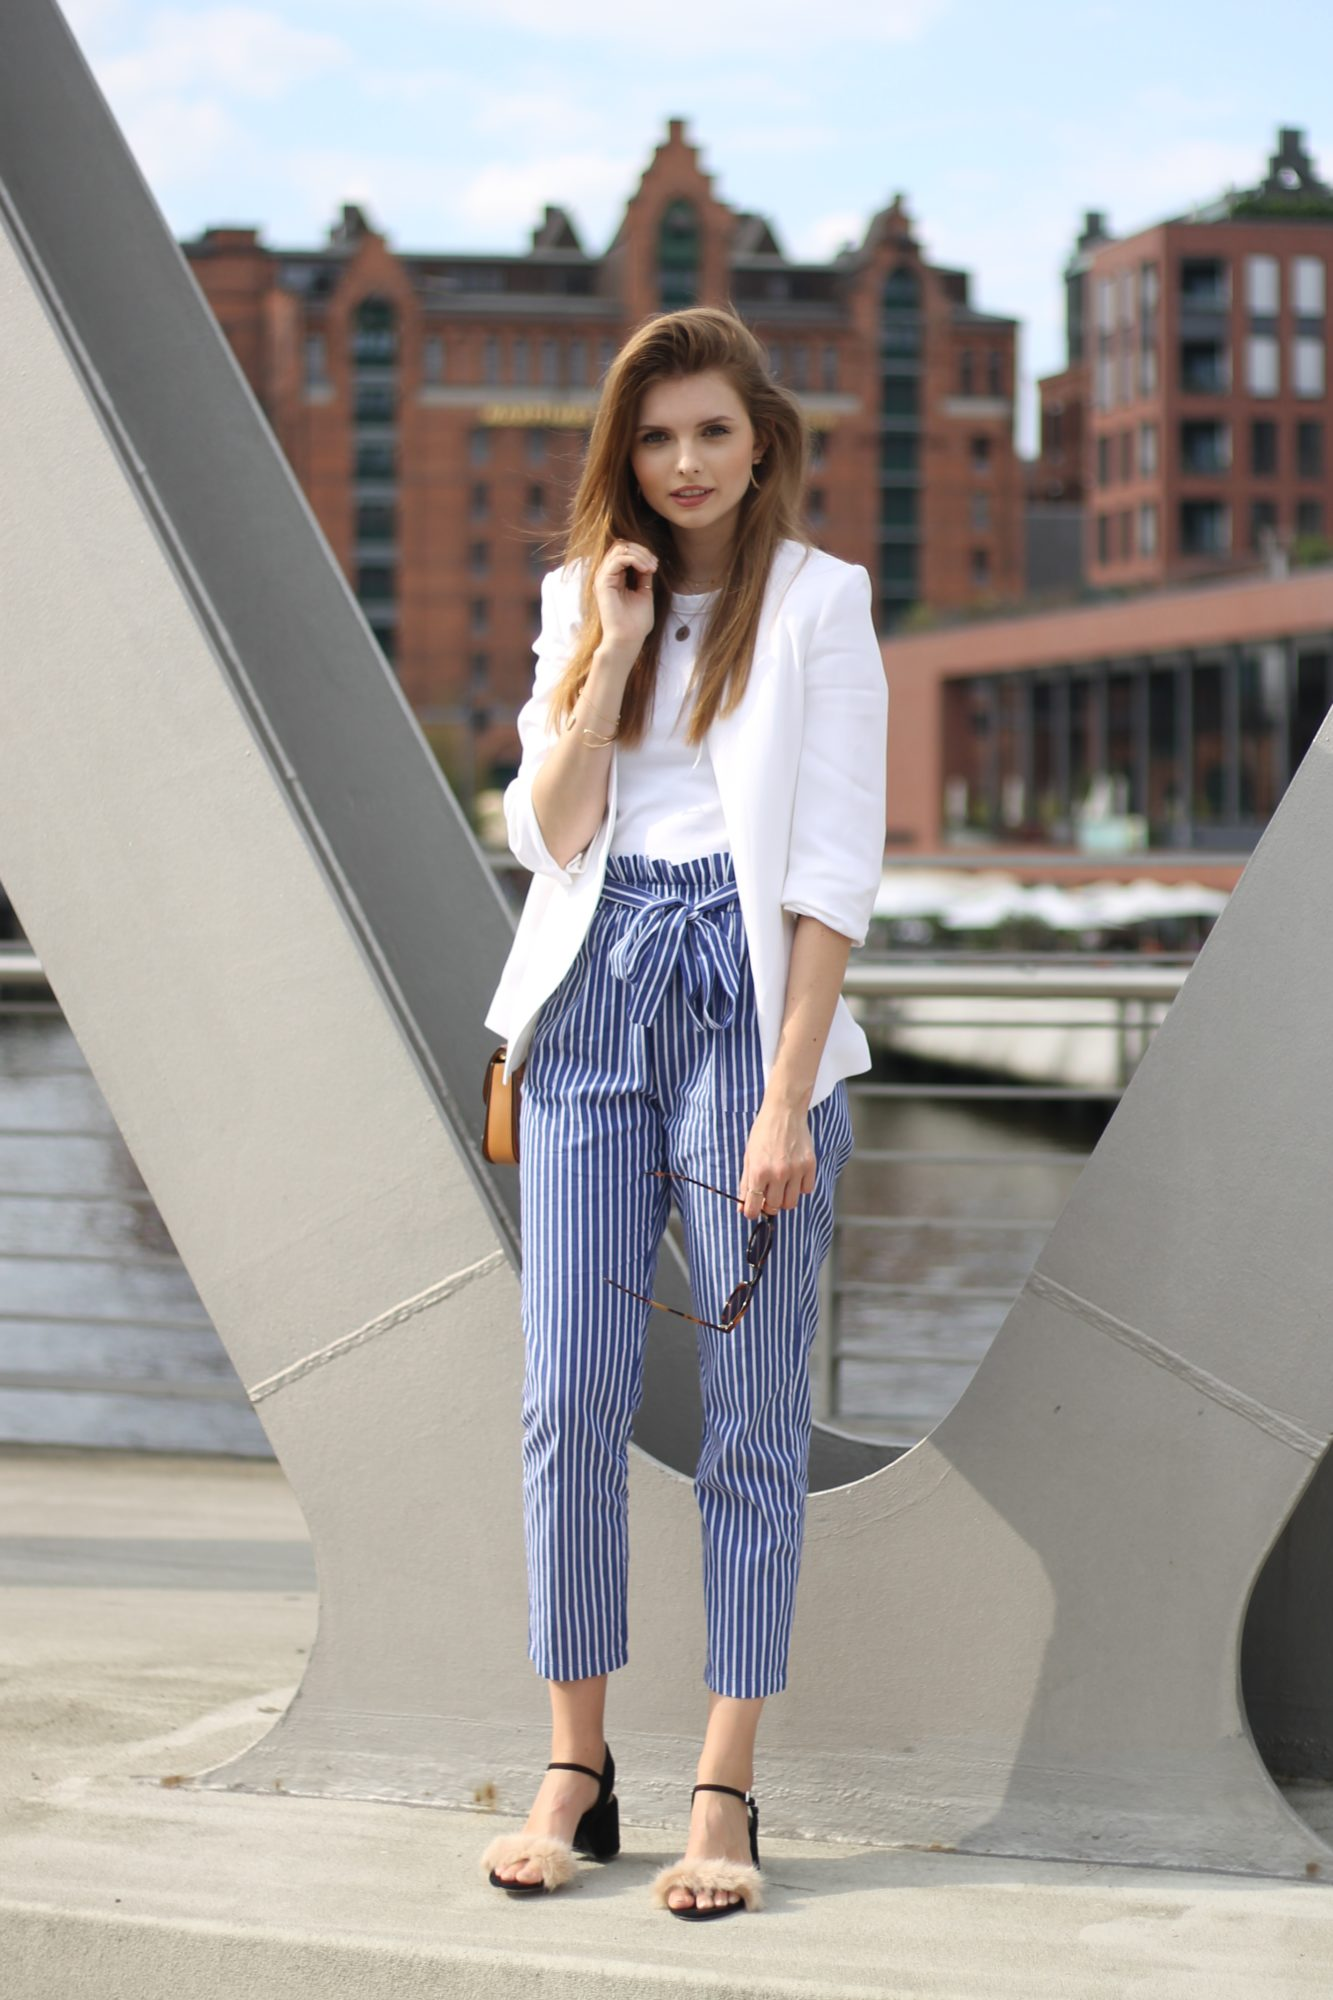 IMG 8670 1333x2000 - CASUAL STRIPED PANTS I HAMBURG STREETSTYLE